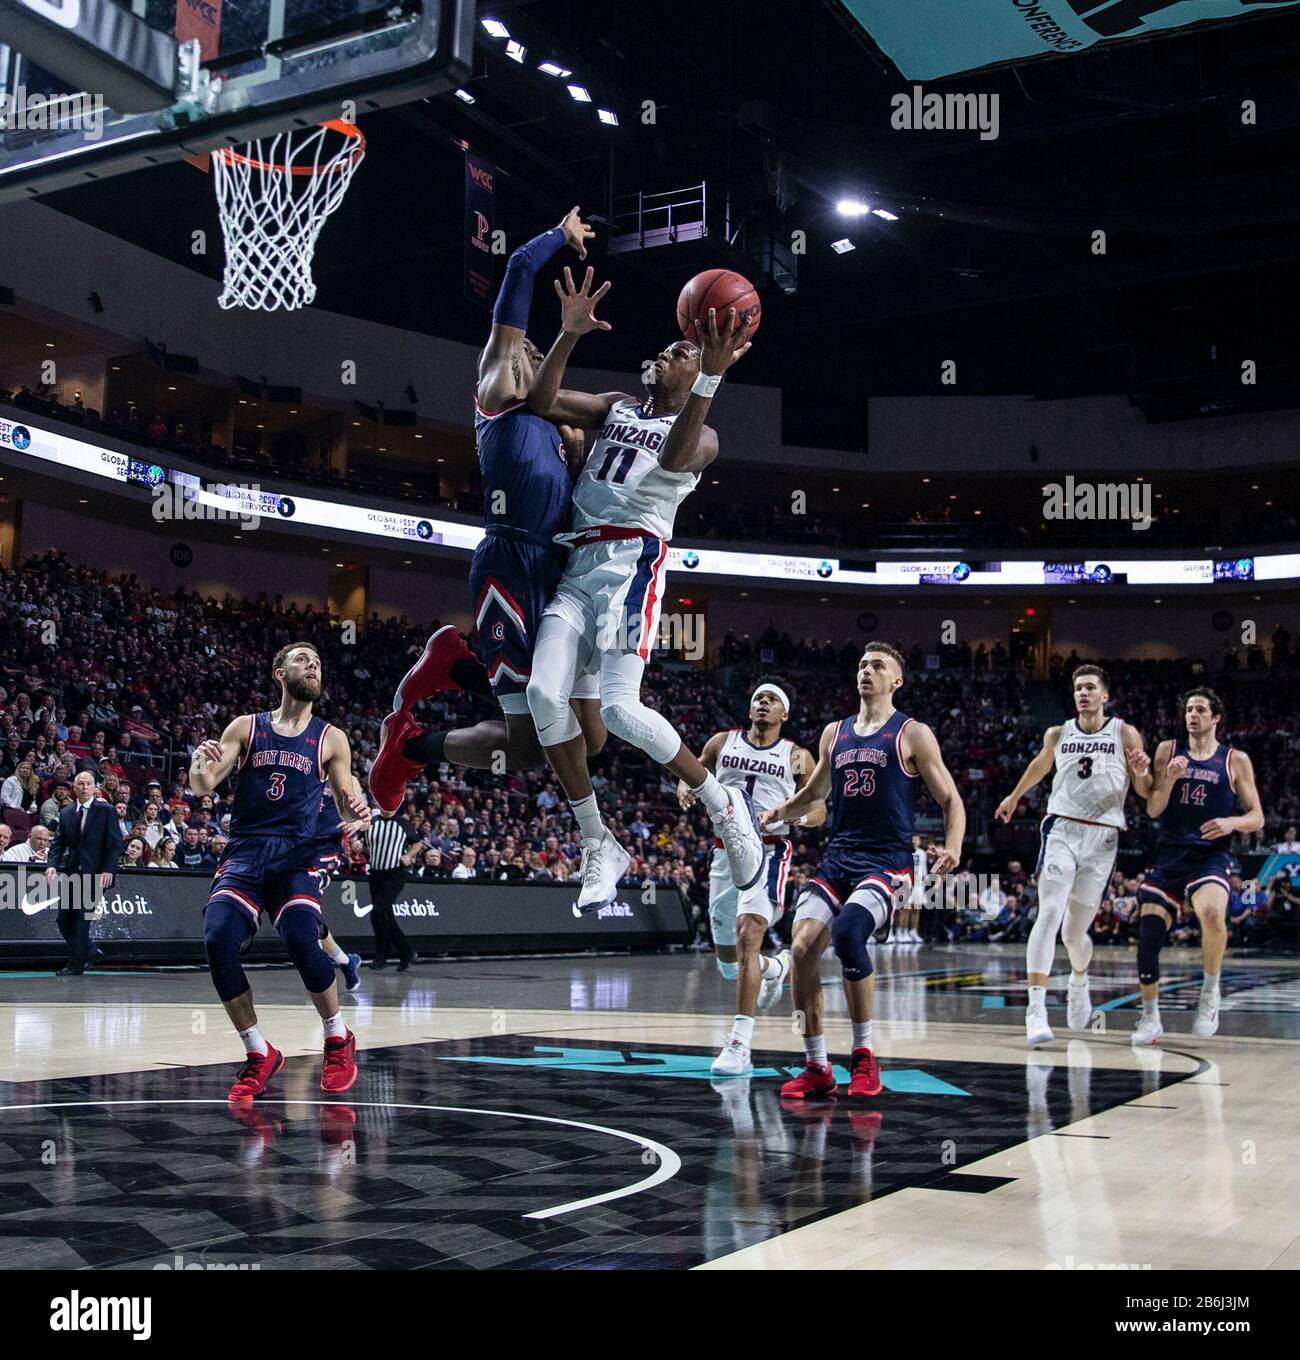 Mar 10 2020 Las Vegas, NV, U.S.A. Gonzaga Bulldogs guard Joel ...